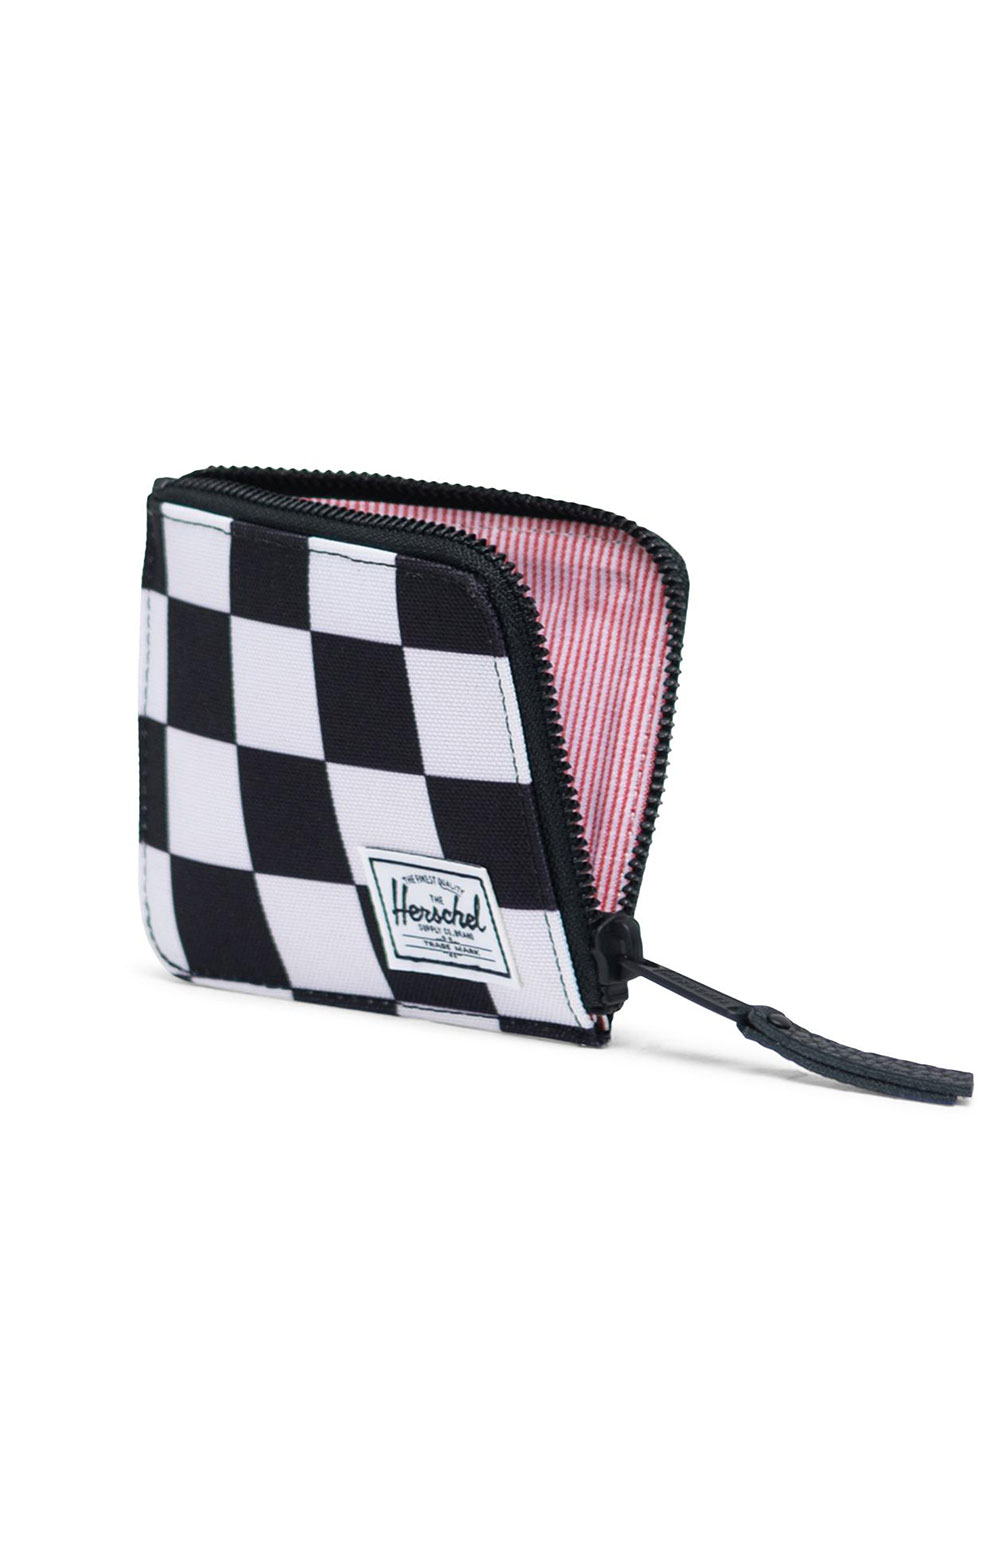 Jack Wallet - Checker Black/White  3